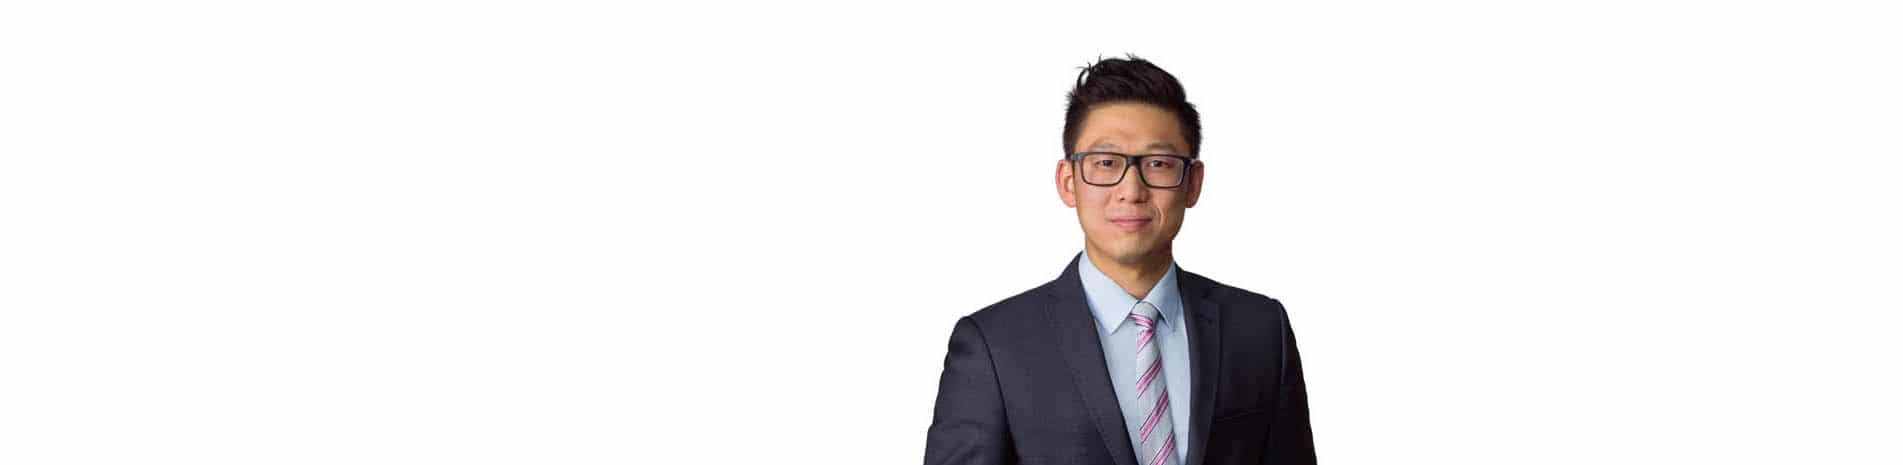 victor wang Mandarin speaking traffic lawyer Melbourne